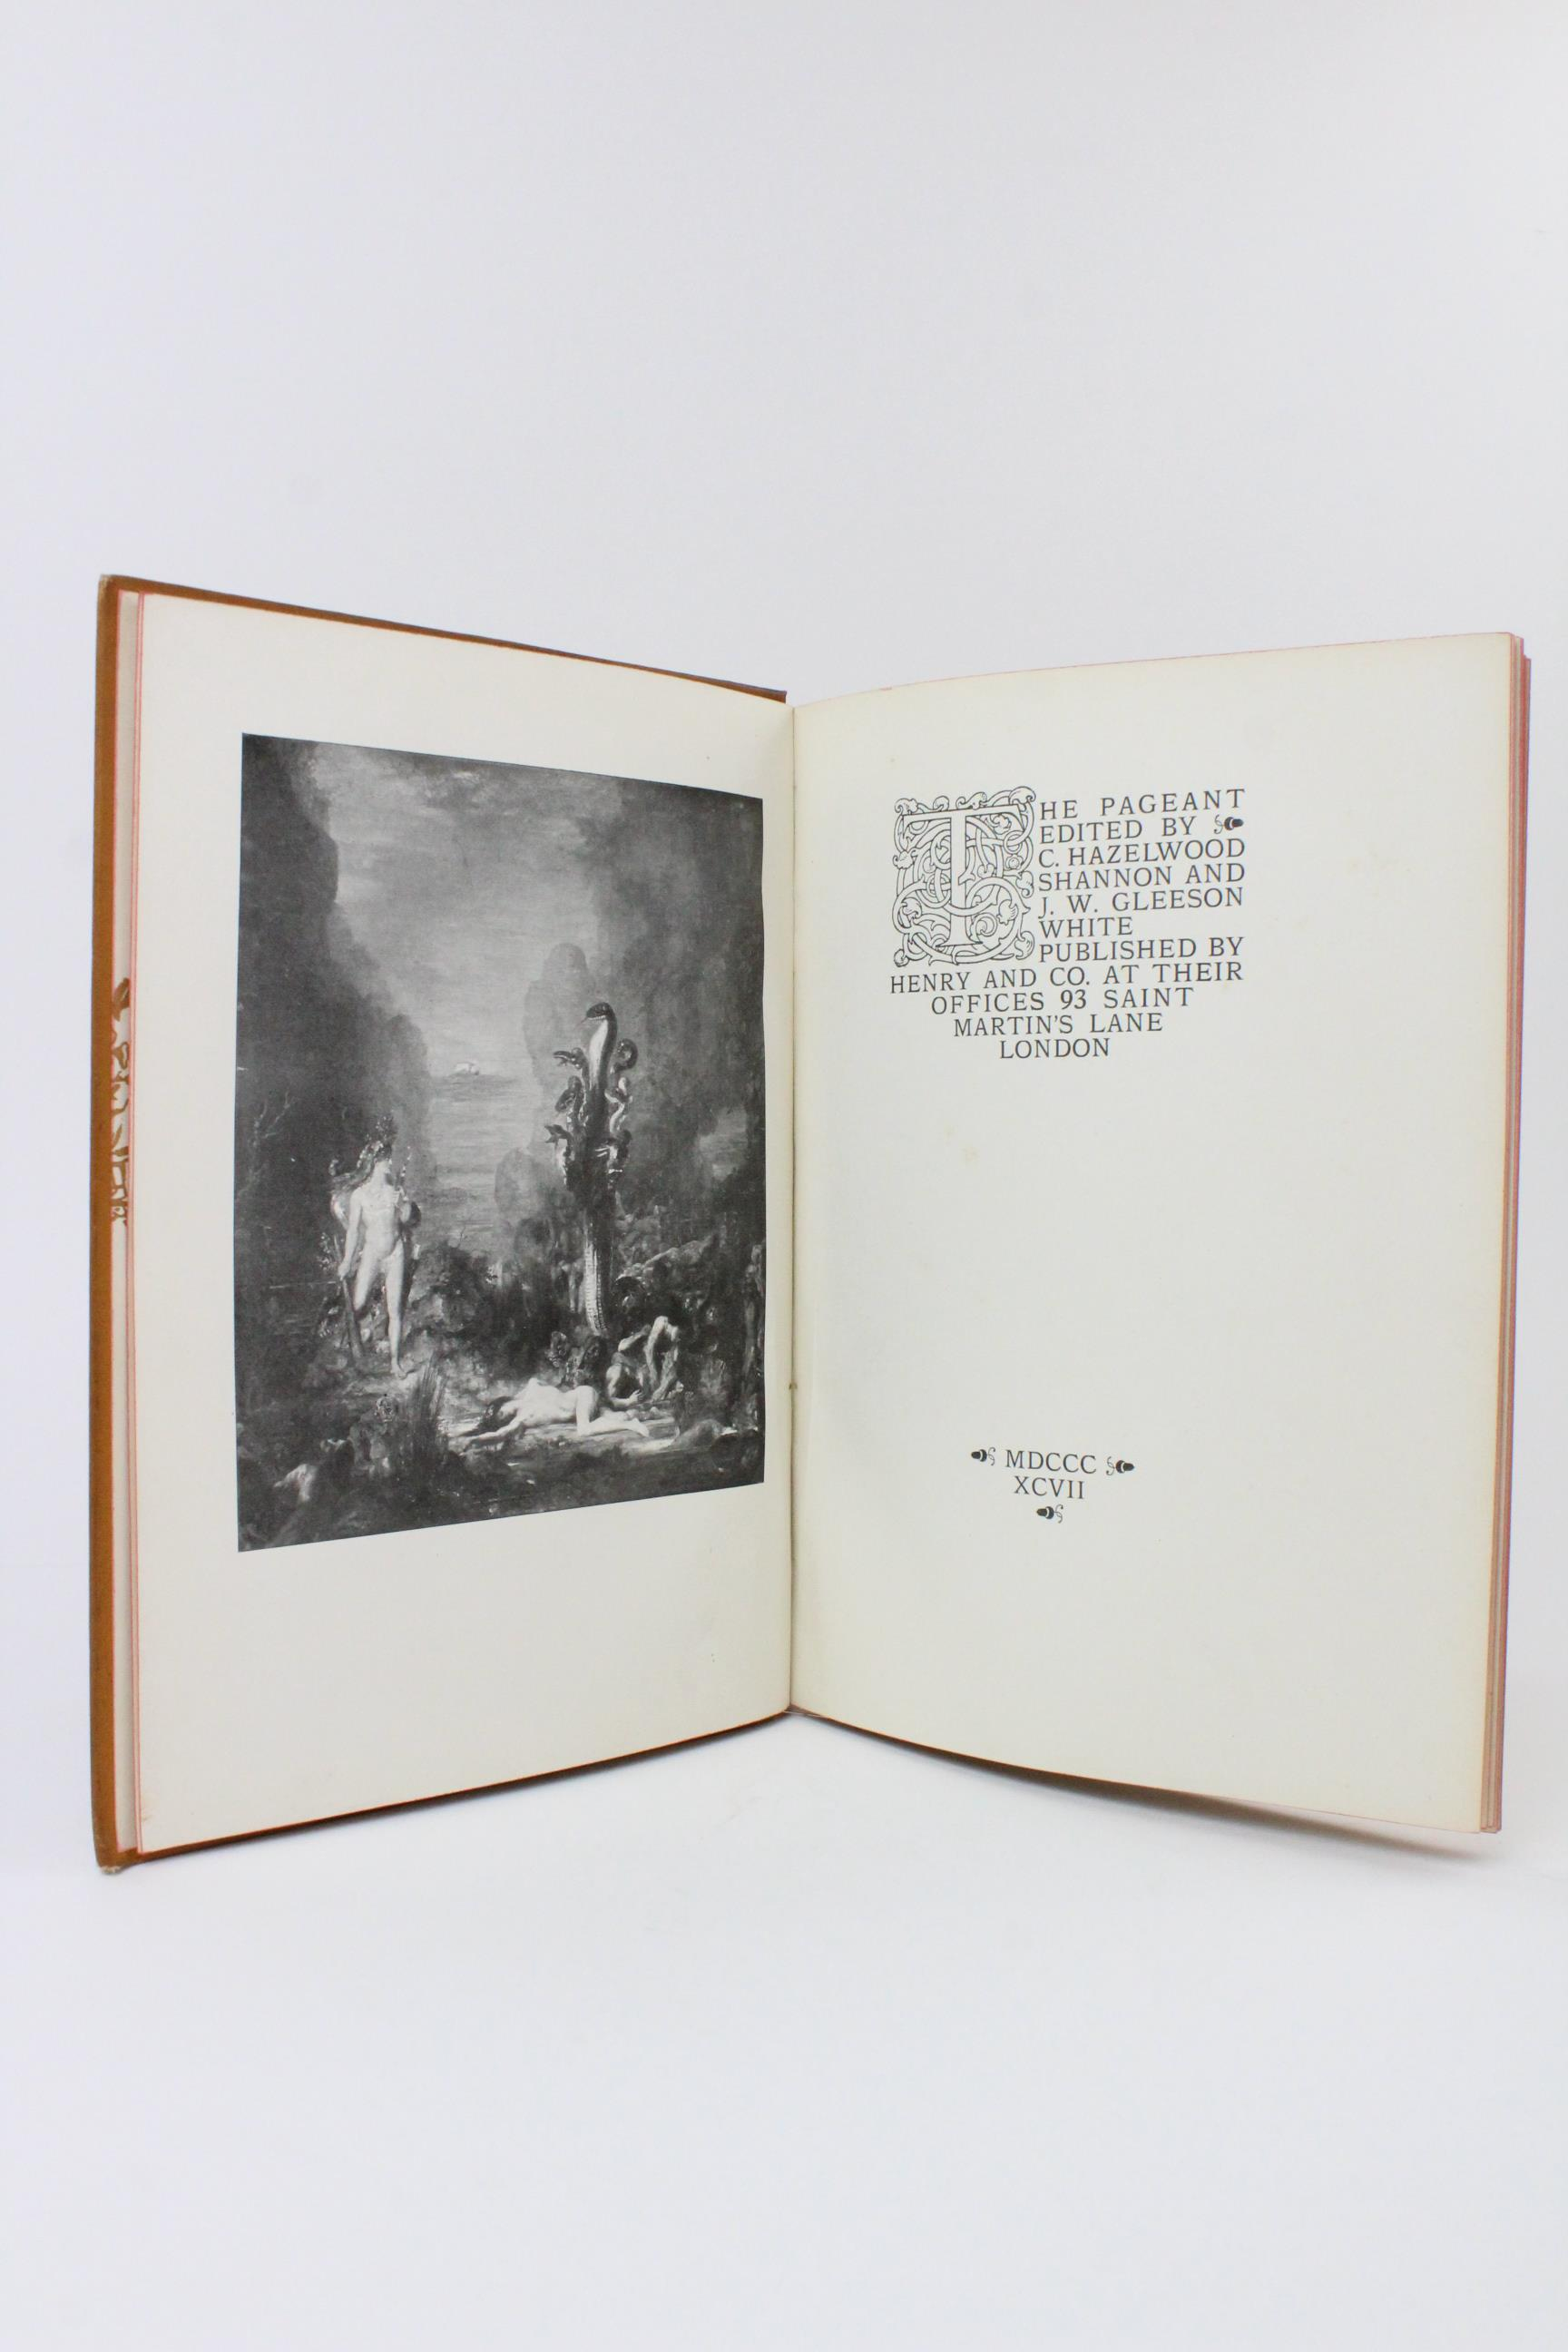 Hazelwood (C) et al, THE PAGEANT, 1897 edition, illustrated red boards, illustrated endpapers, - Image 2 of 16